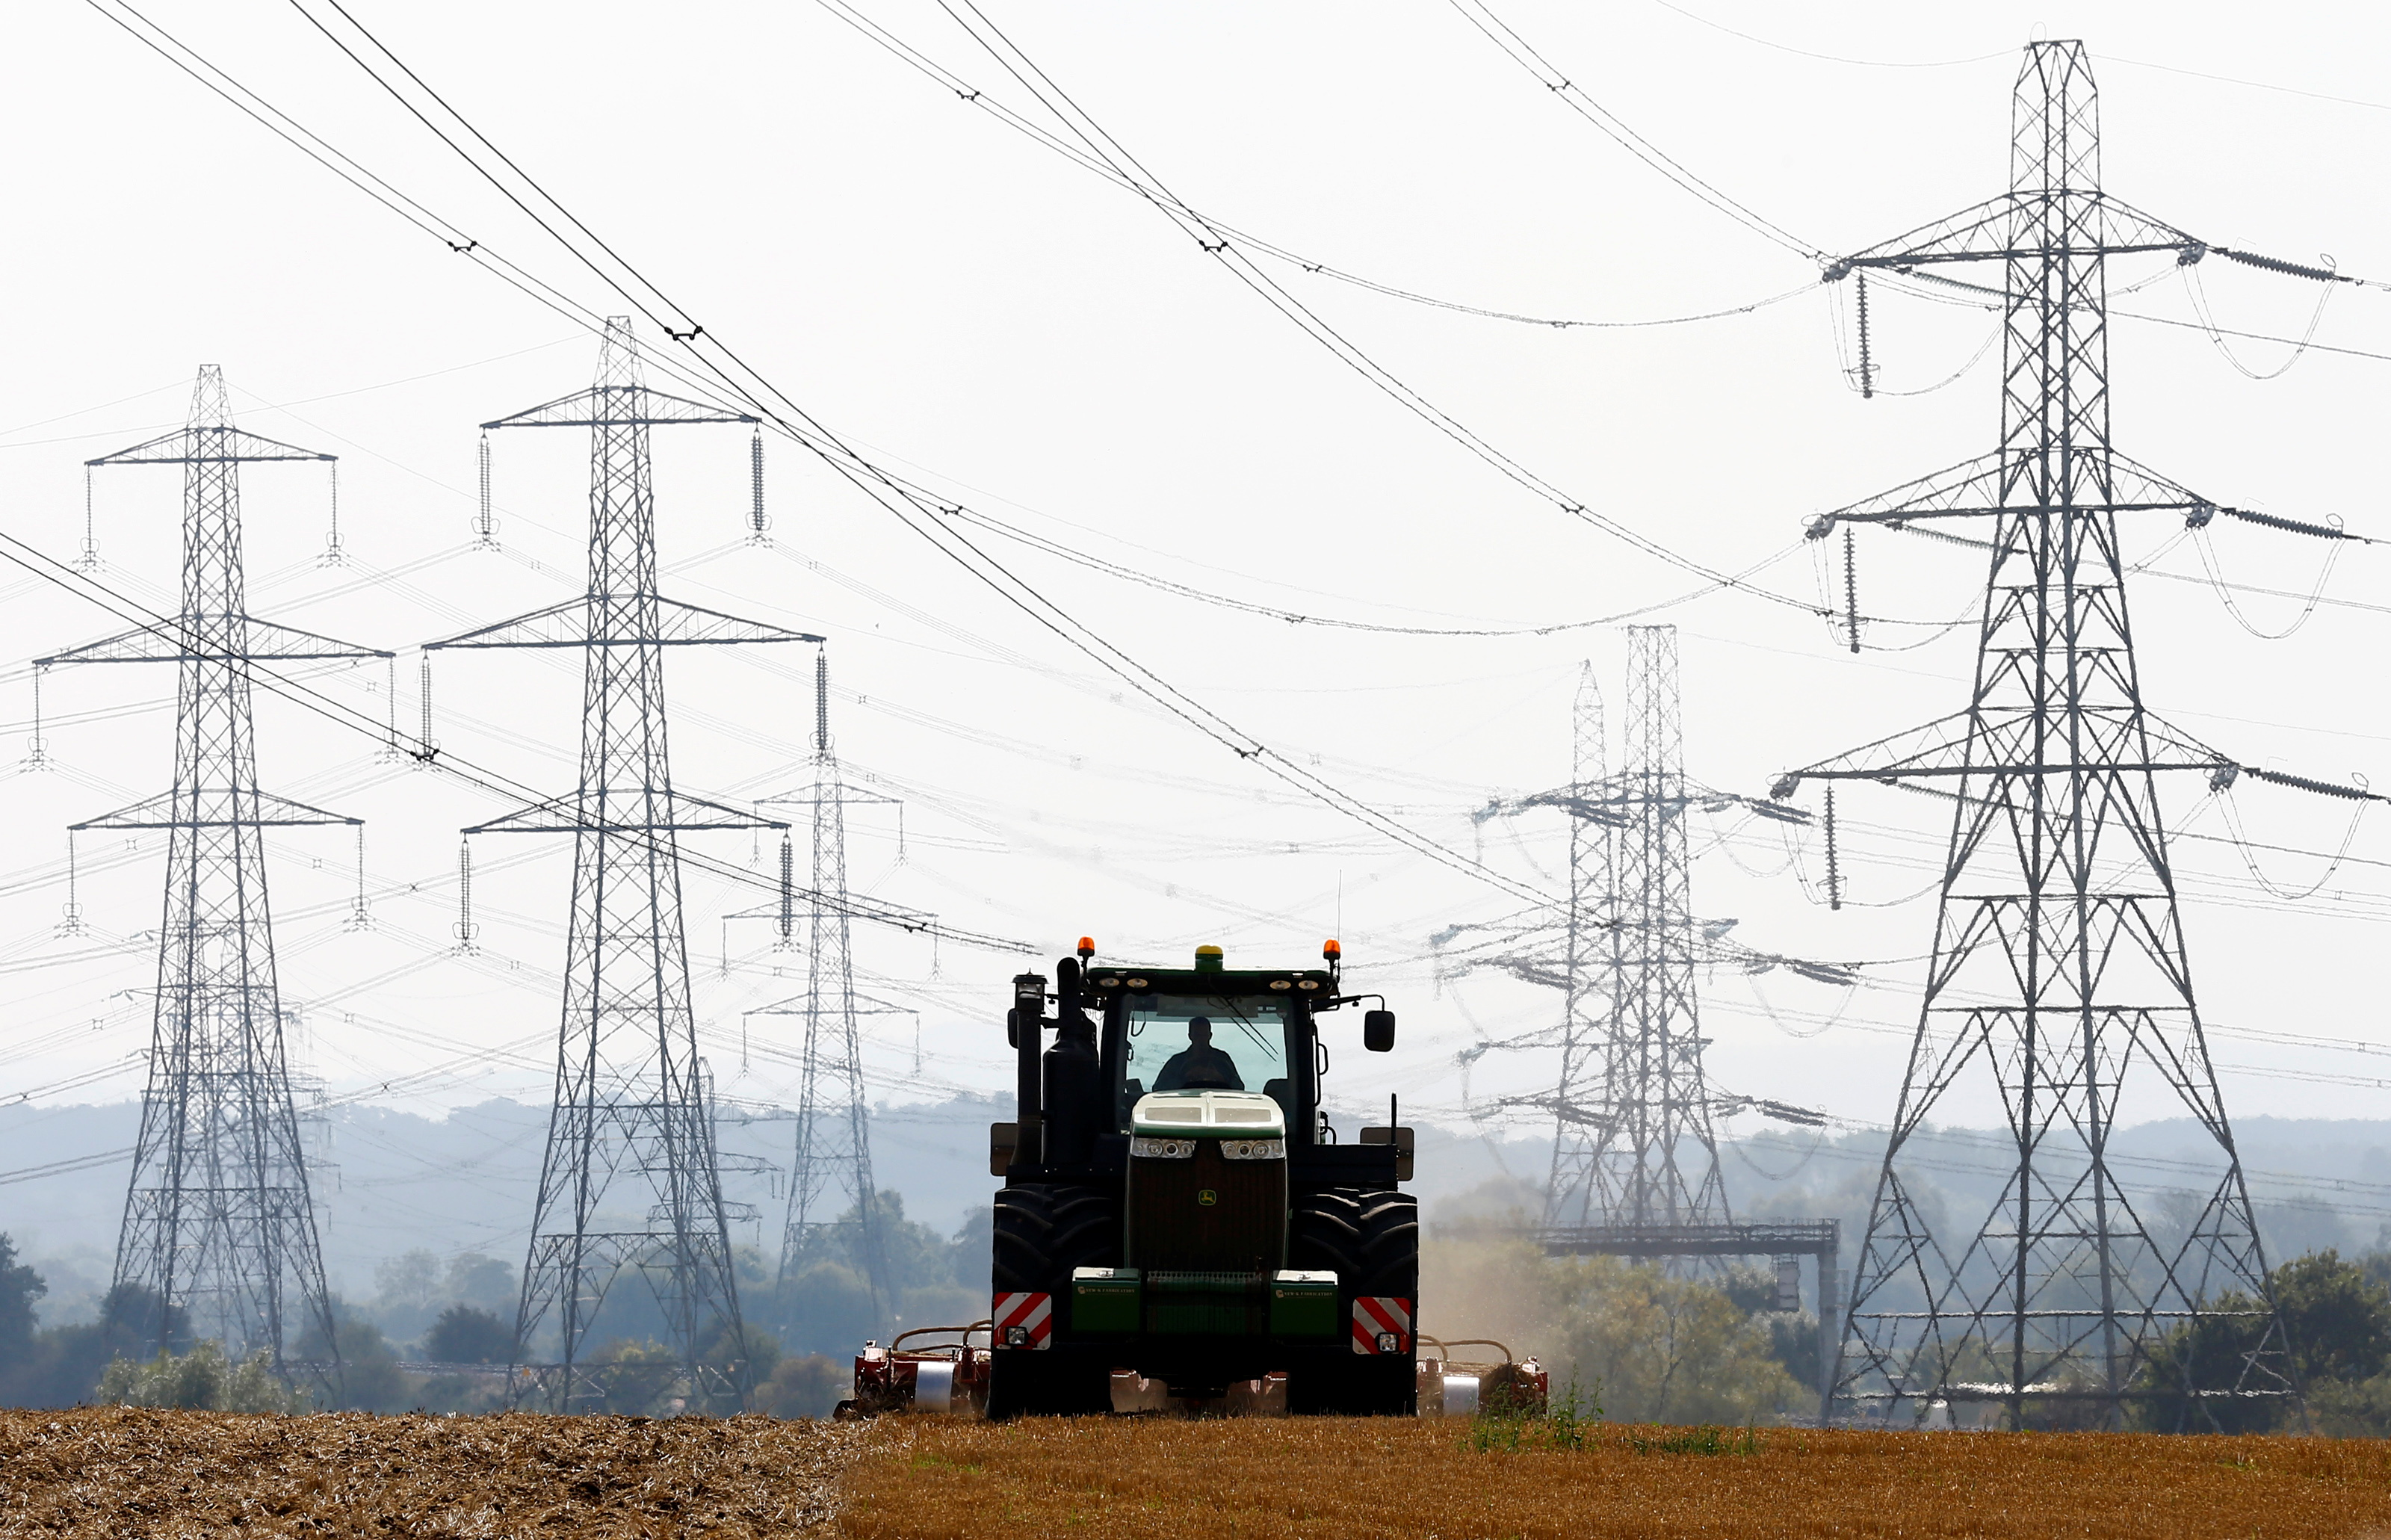 A farmer works in a field surrounded by electricity pylons in Ratcliffe-on-Soar, in central England, September 10, 2014.  REUTERS/Darren Staples/File Photo